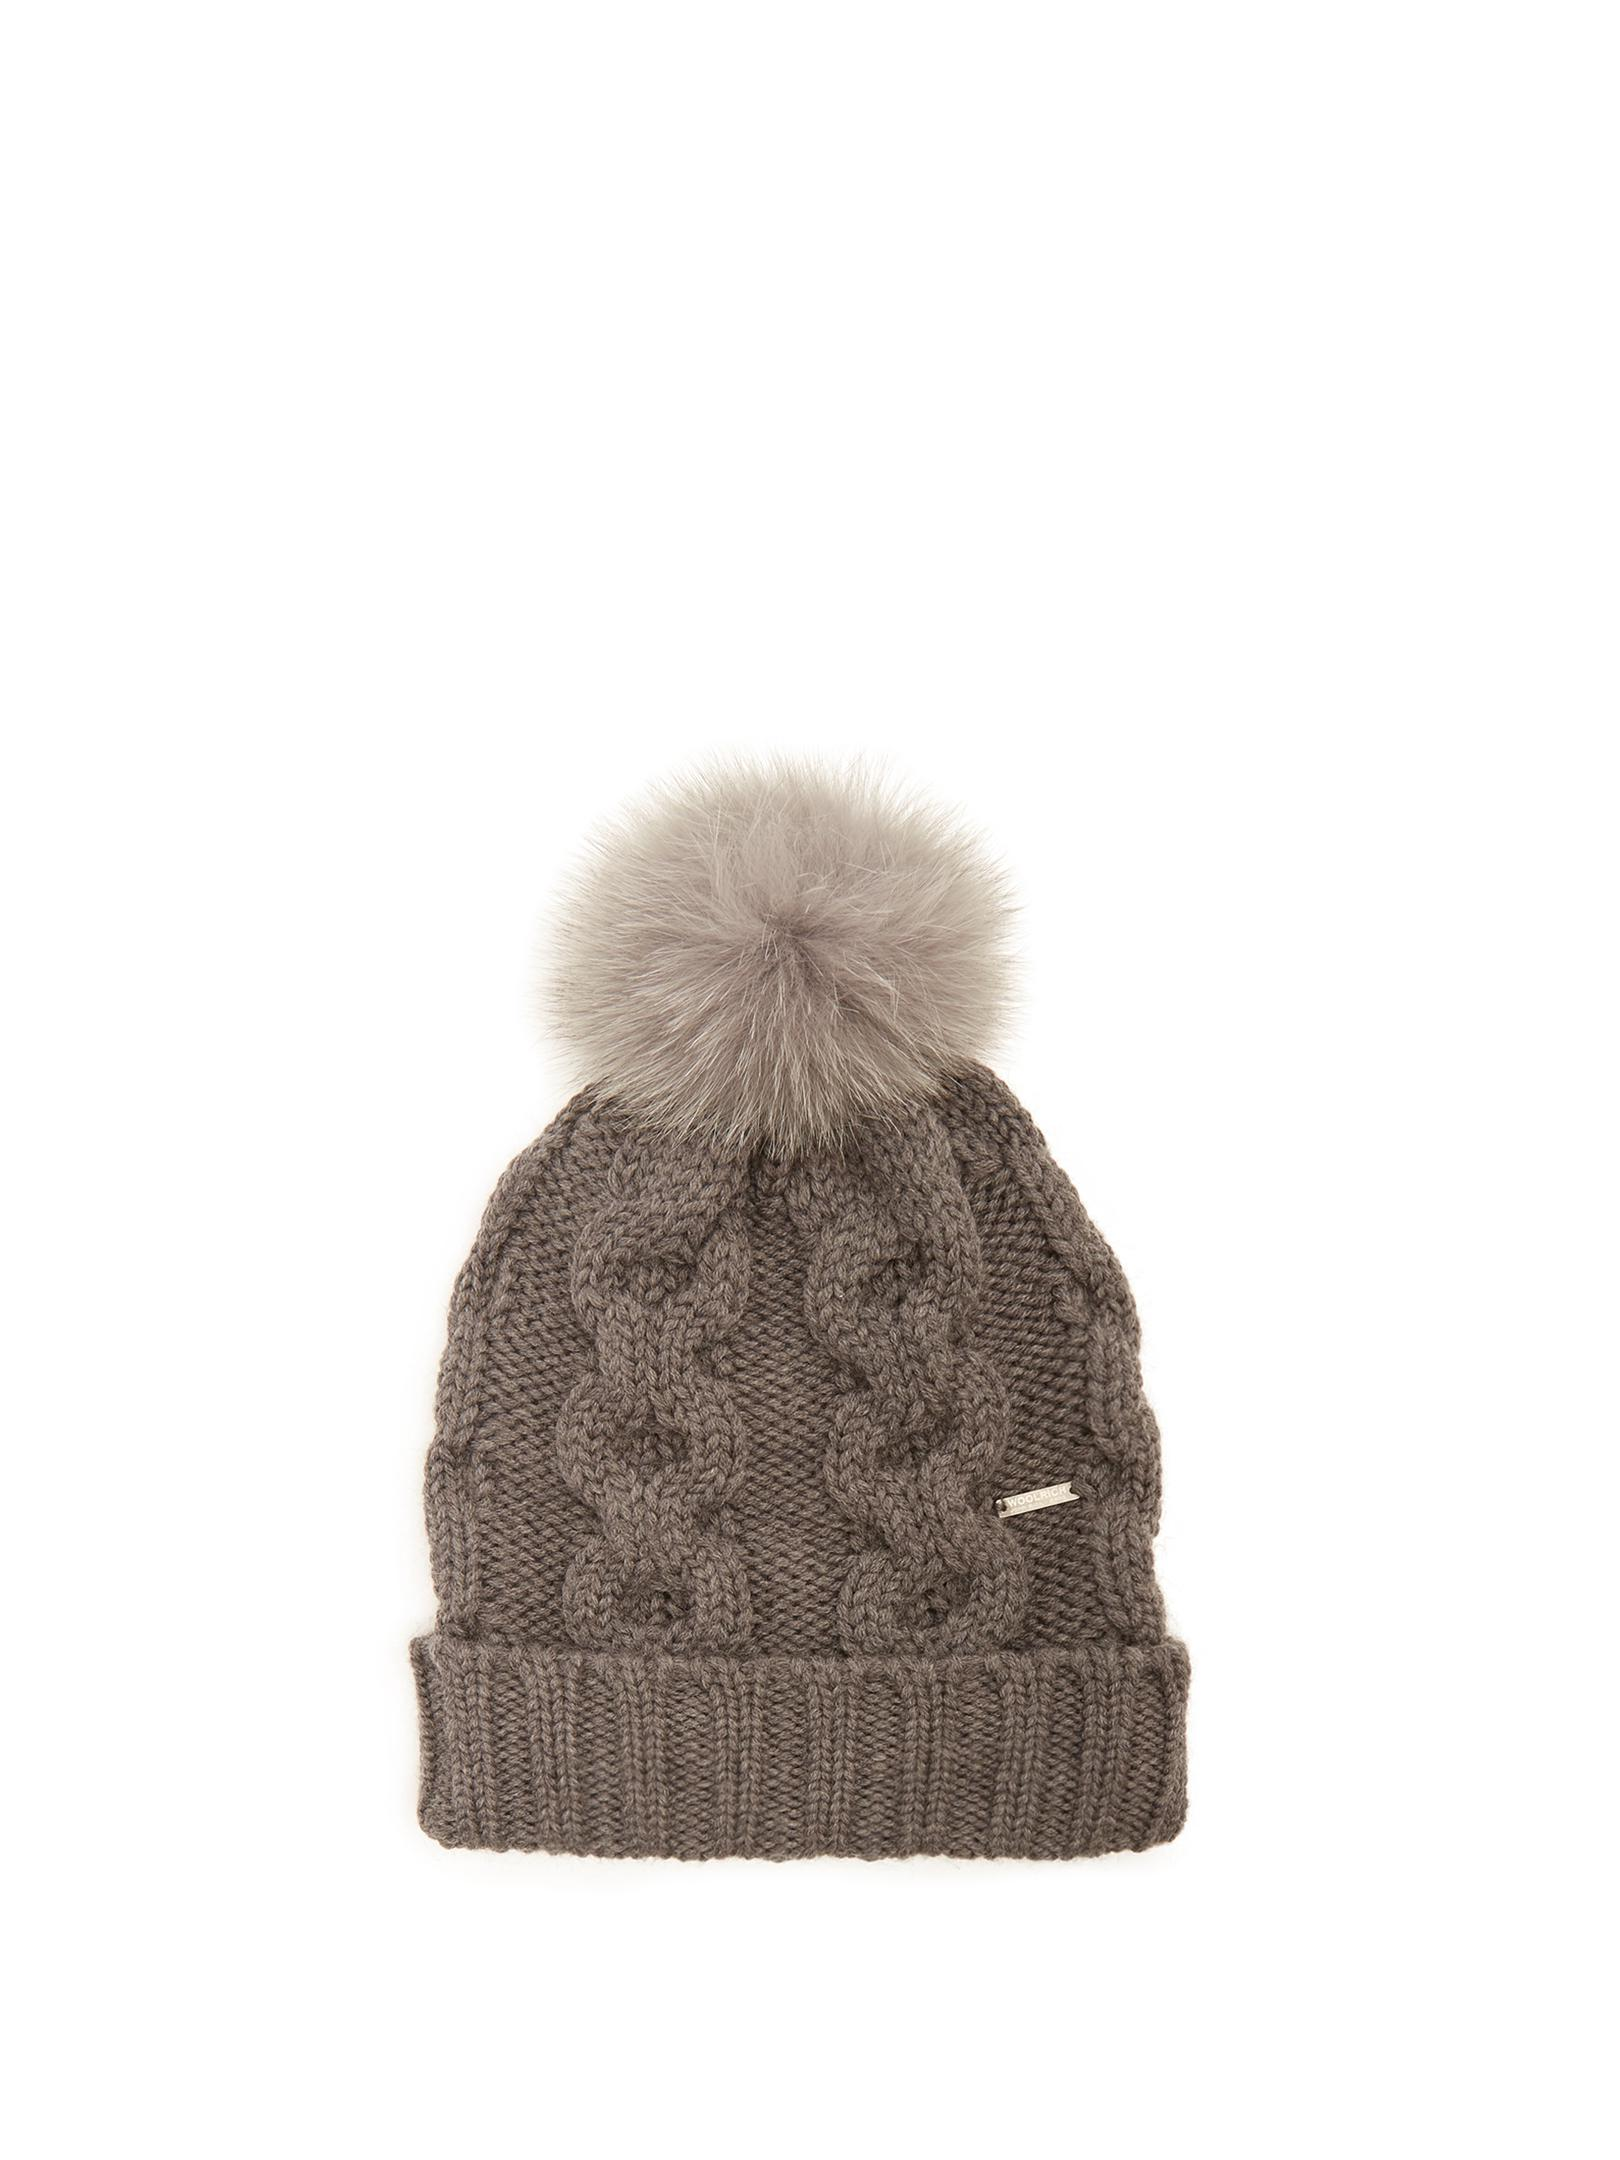 50bf1ce478786 Lyst - Woolrich Serenity Fur-pompom Cable-knit Wool Beanie Hat in Gray